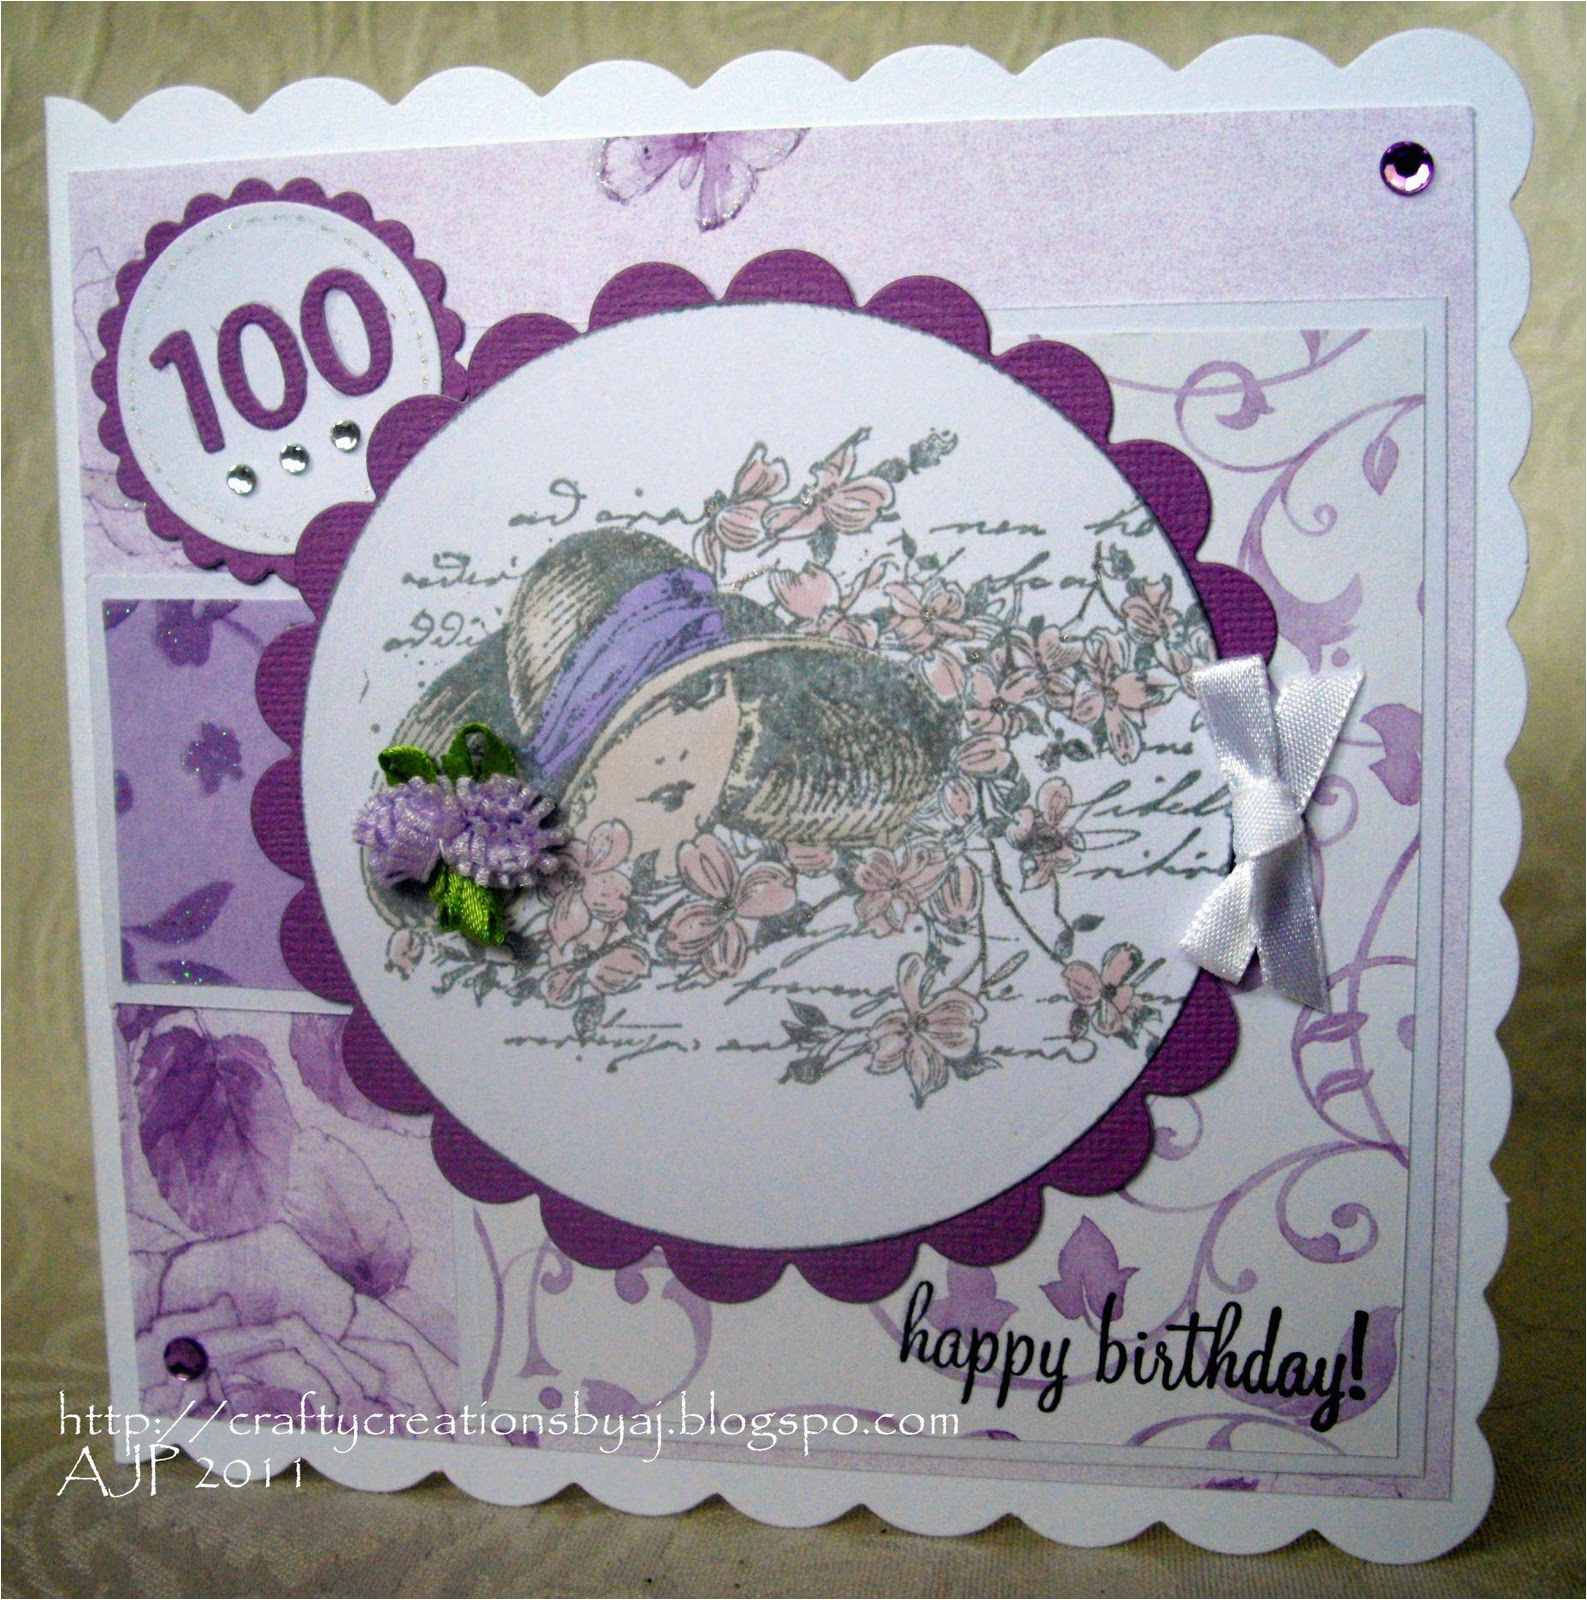 100 years old birthday card